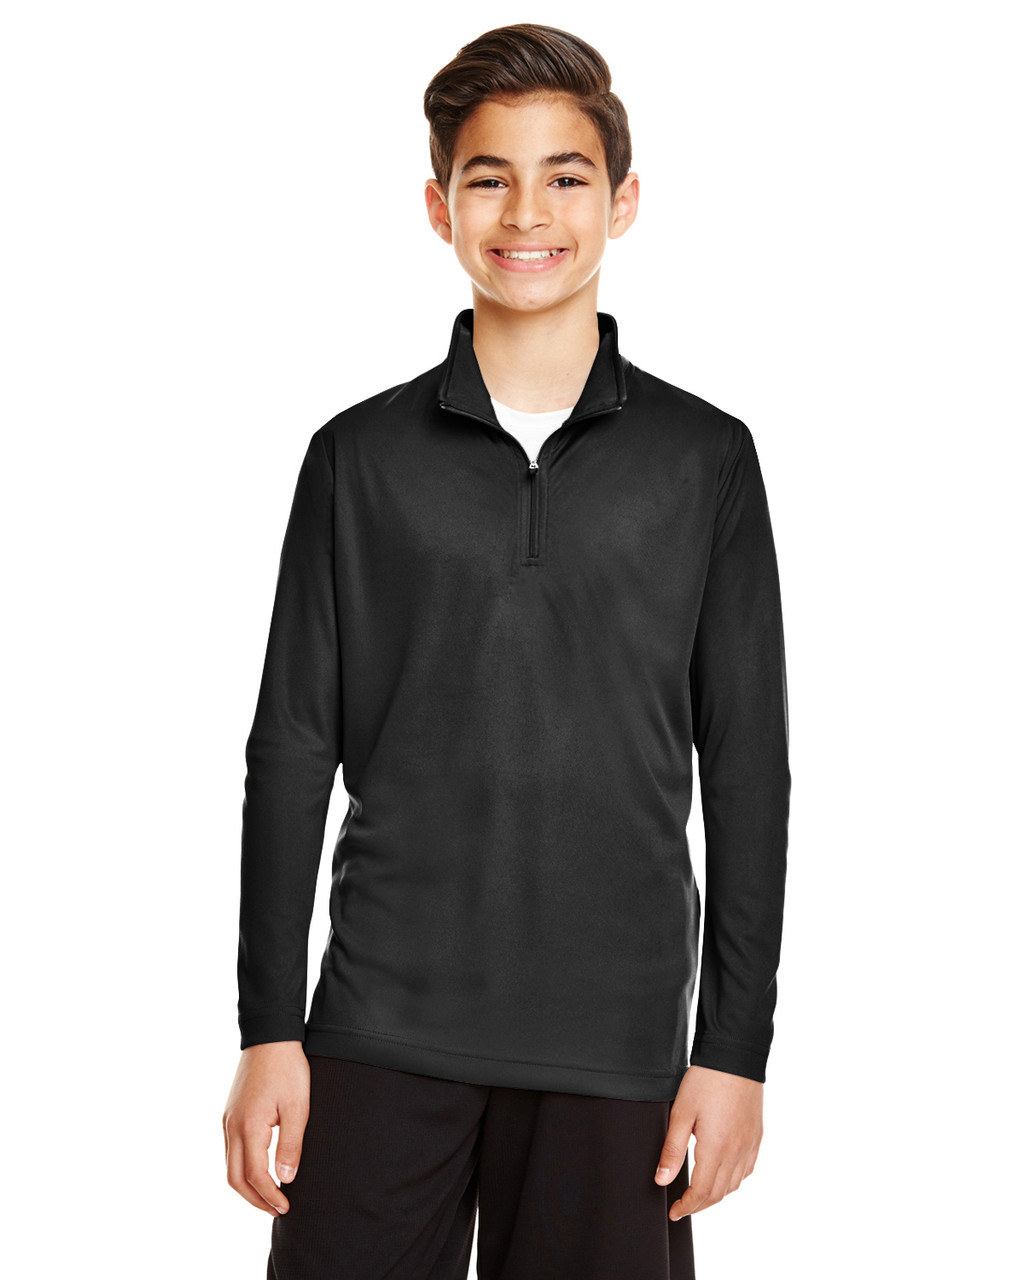 Black - TT31Y Team 365 Youth Zone Performance Quarter-Zip Shirt